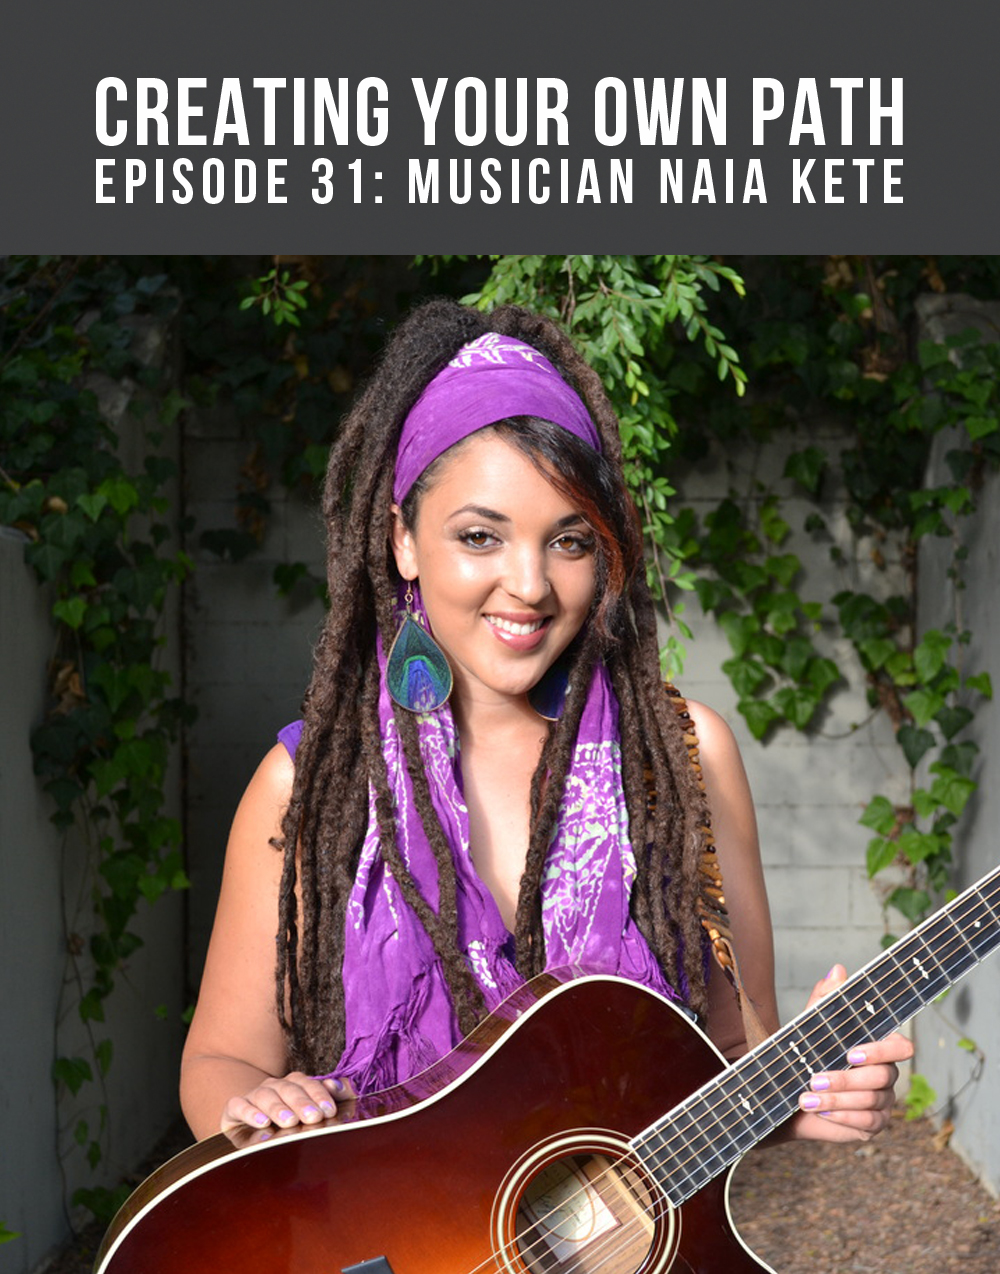 Creating Your Own Path with Musician Naia Kete // Full episode at creatingyourownpath.com.